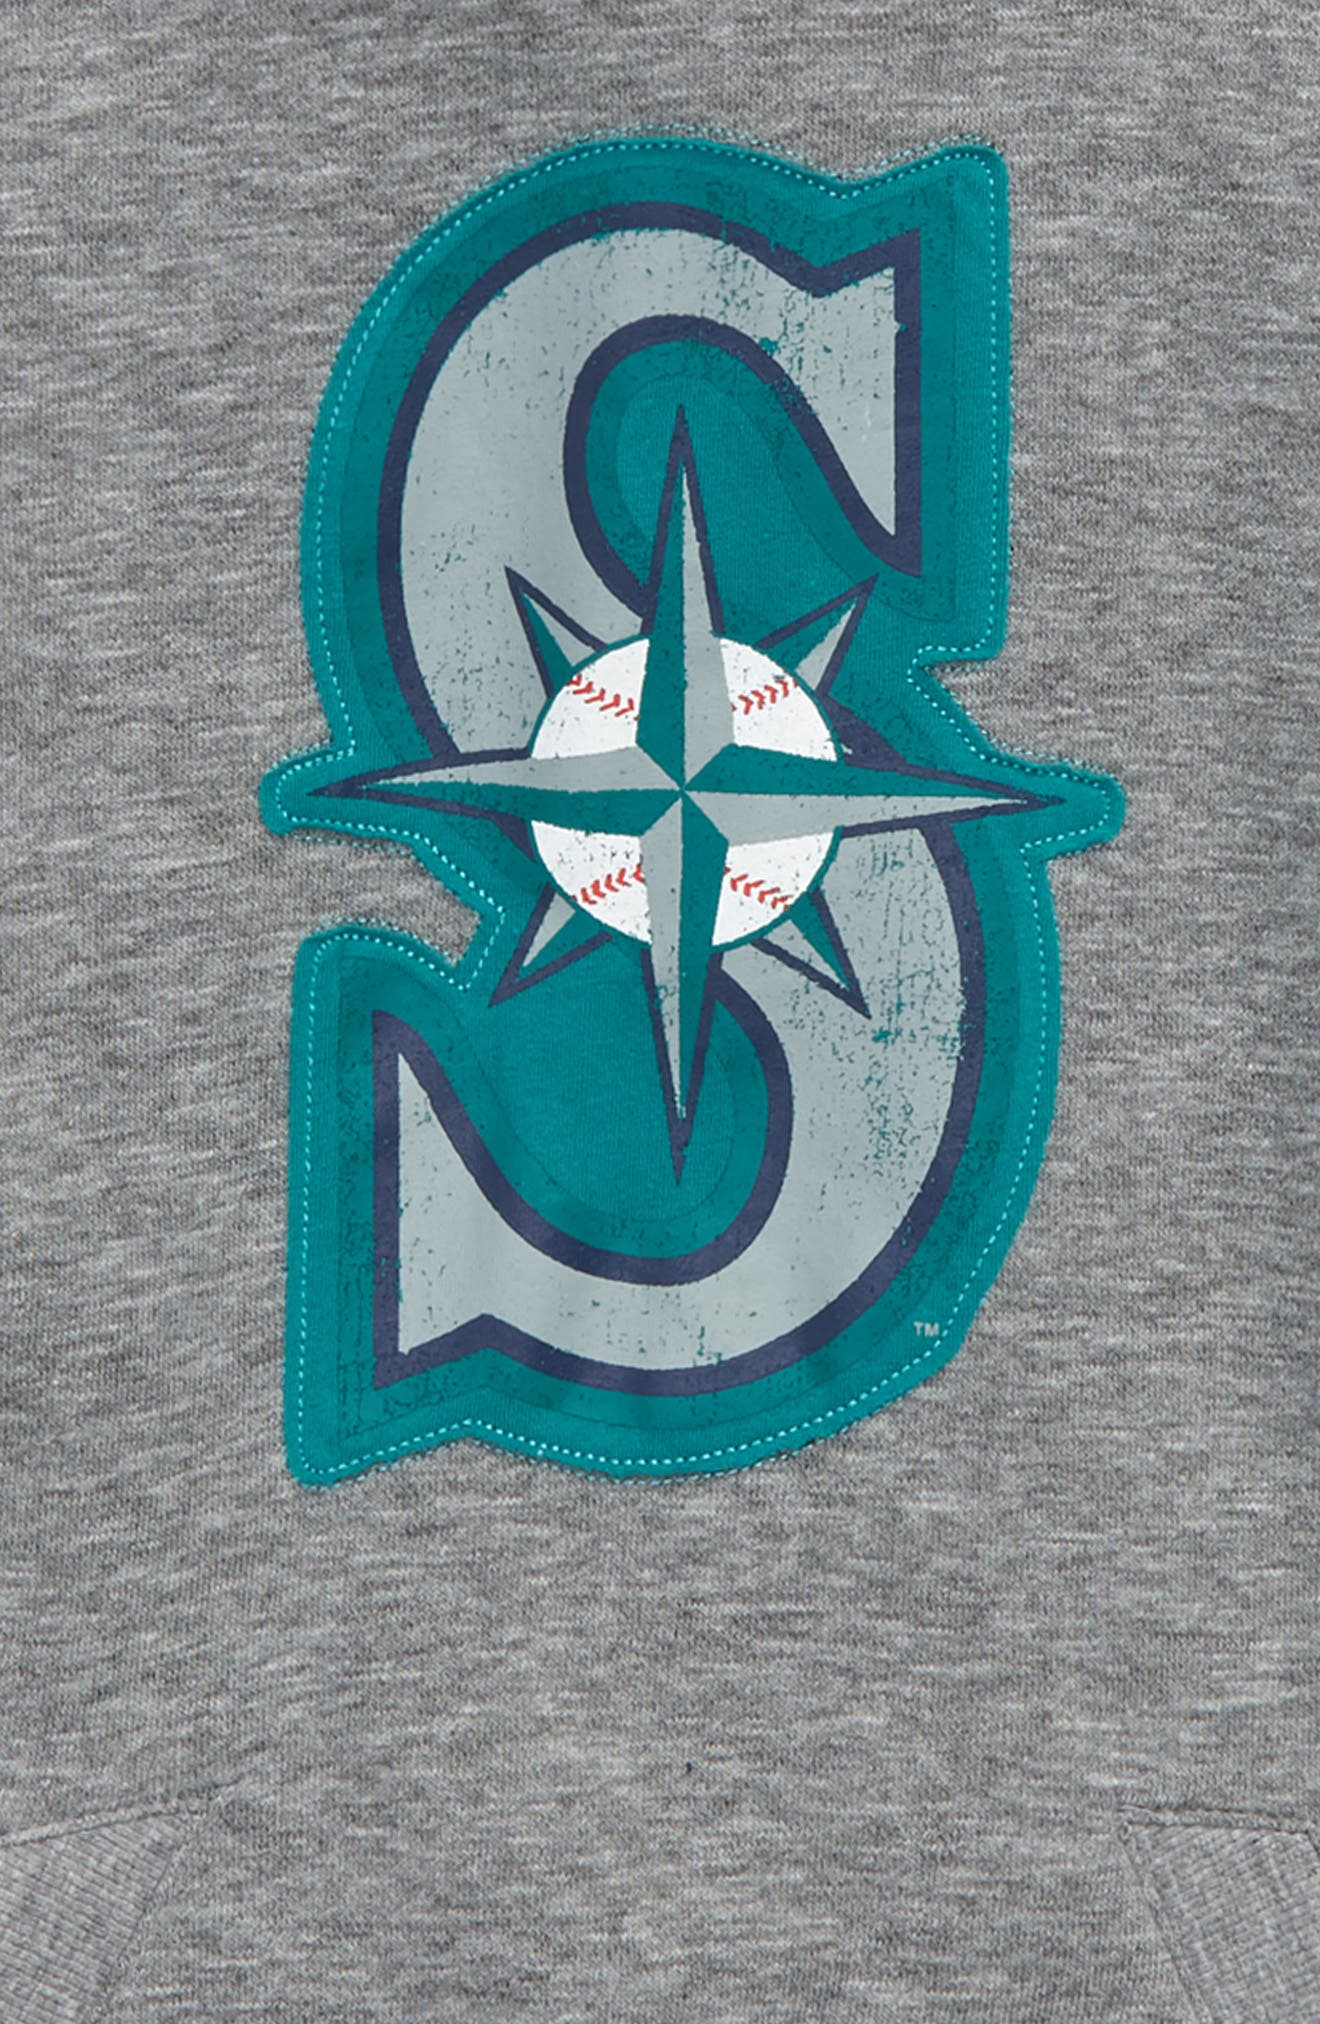 New Beginnings - Seattle Mariners Pullover Hoodie,                             Alternate thumbnail 2, color,                             Gray